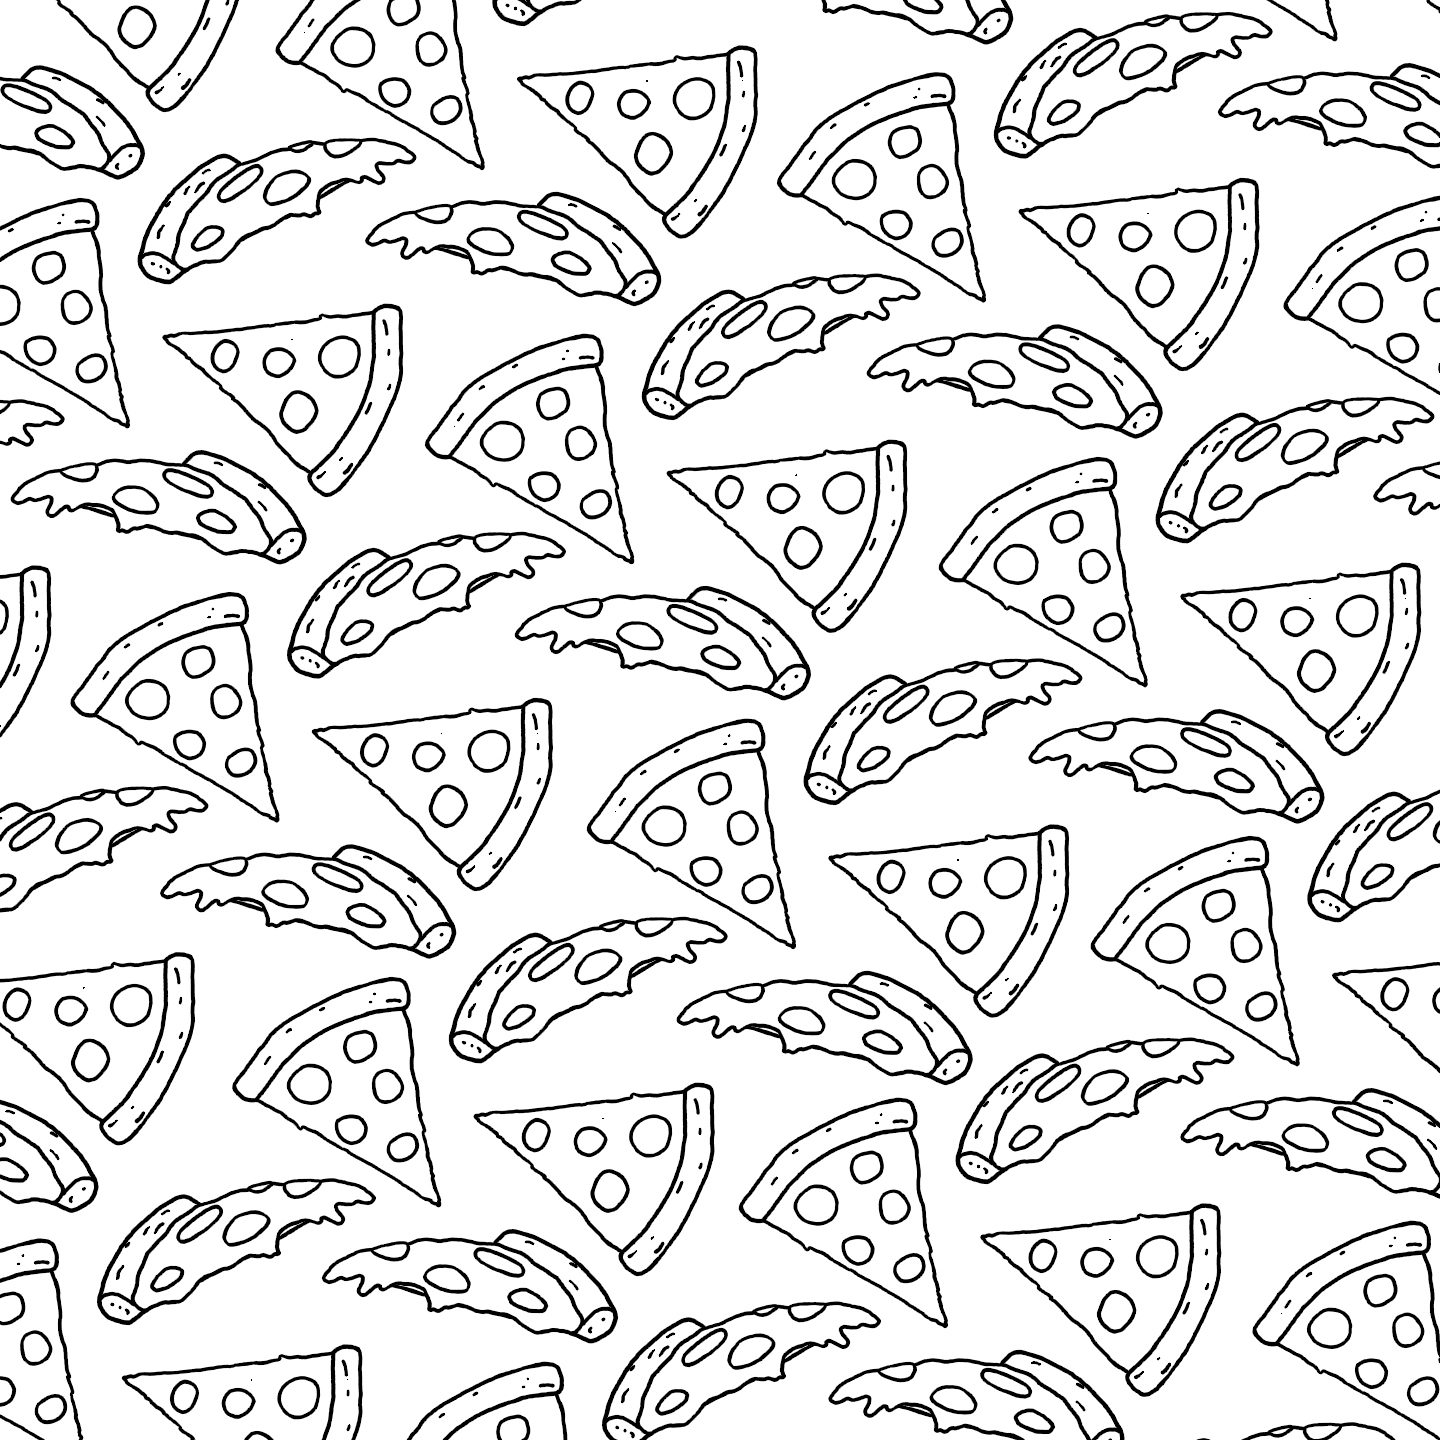 pizza_pattern.jpg